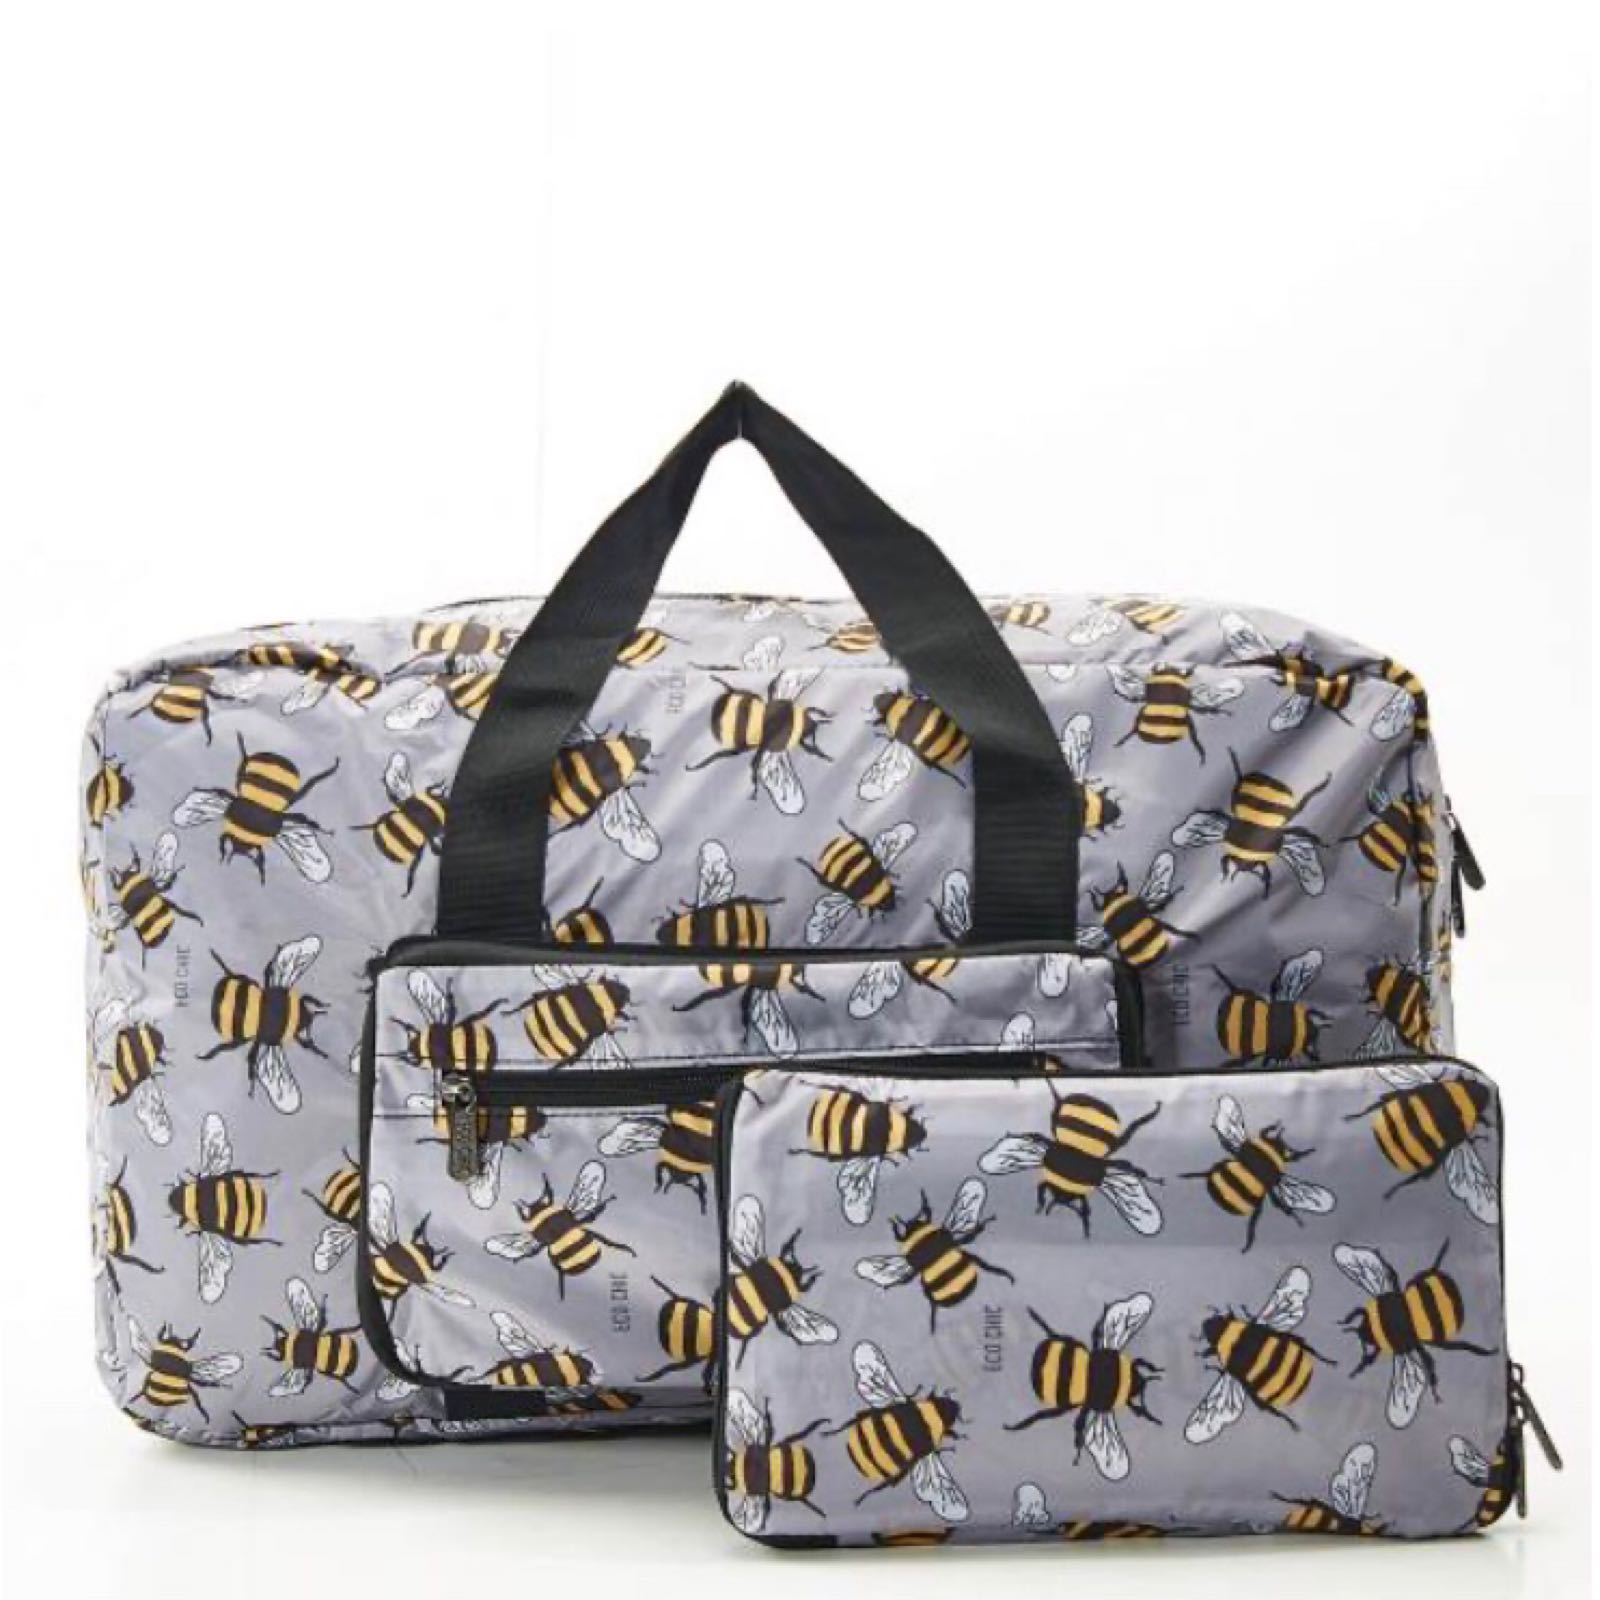 'Bees' Foldable Holdall